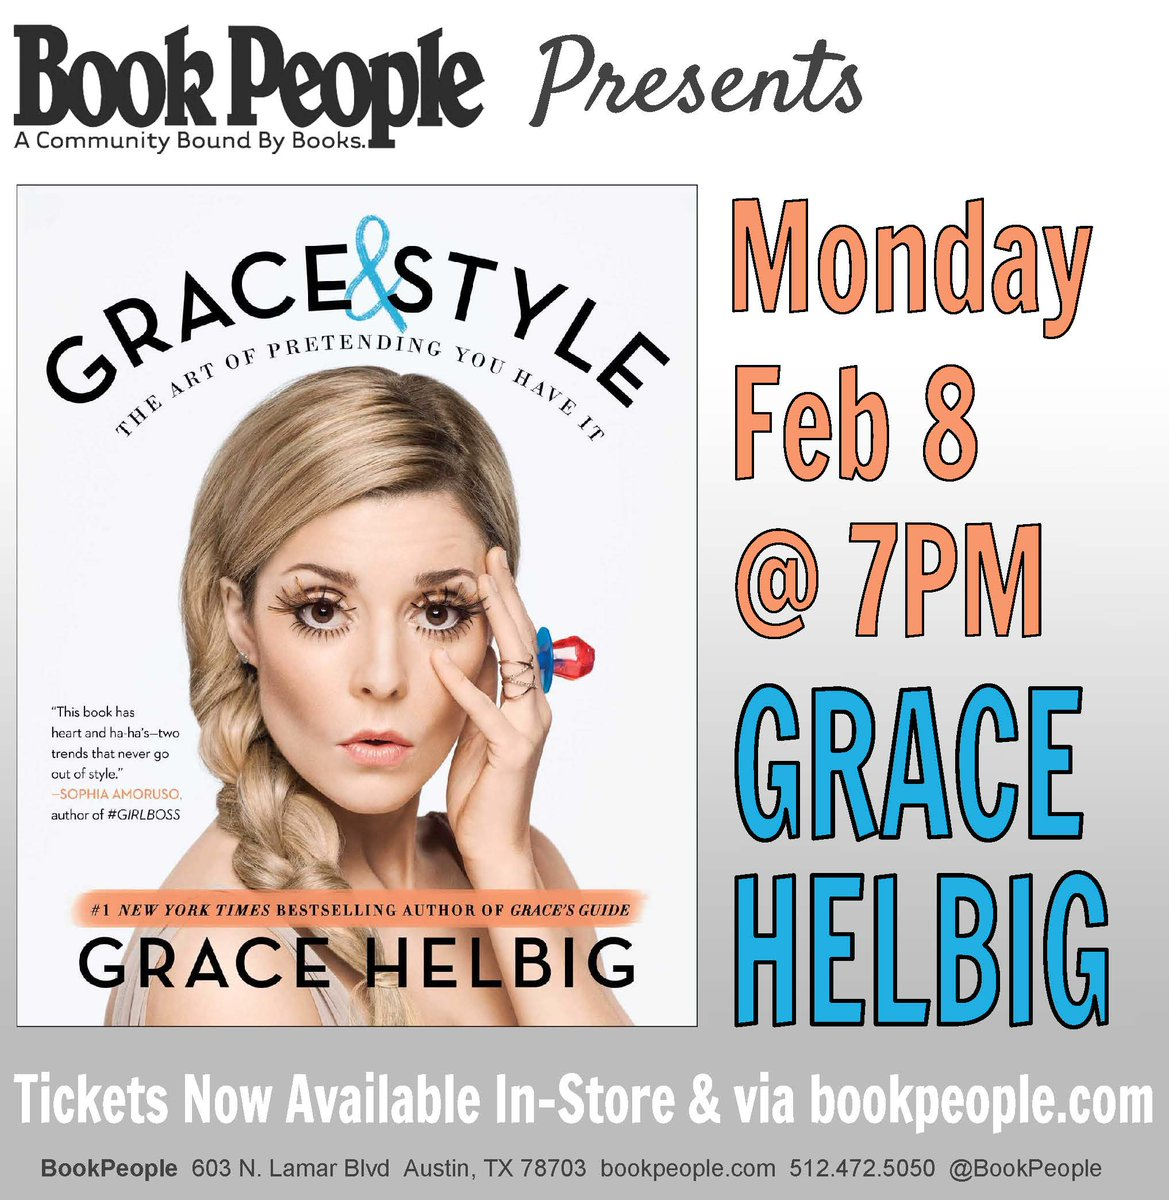 TONIGHT 7p: @gracehelbig signs #GraceAndStyle! Tickets are available: https://t.co/ghB4wMd50P https://t.co/4ykCz5heQC